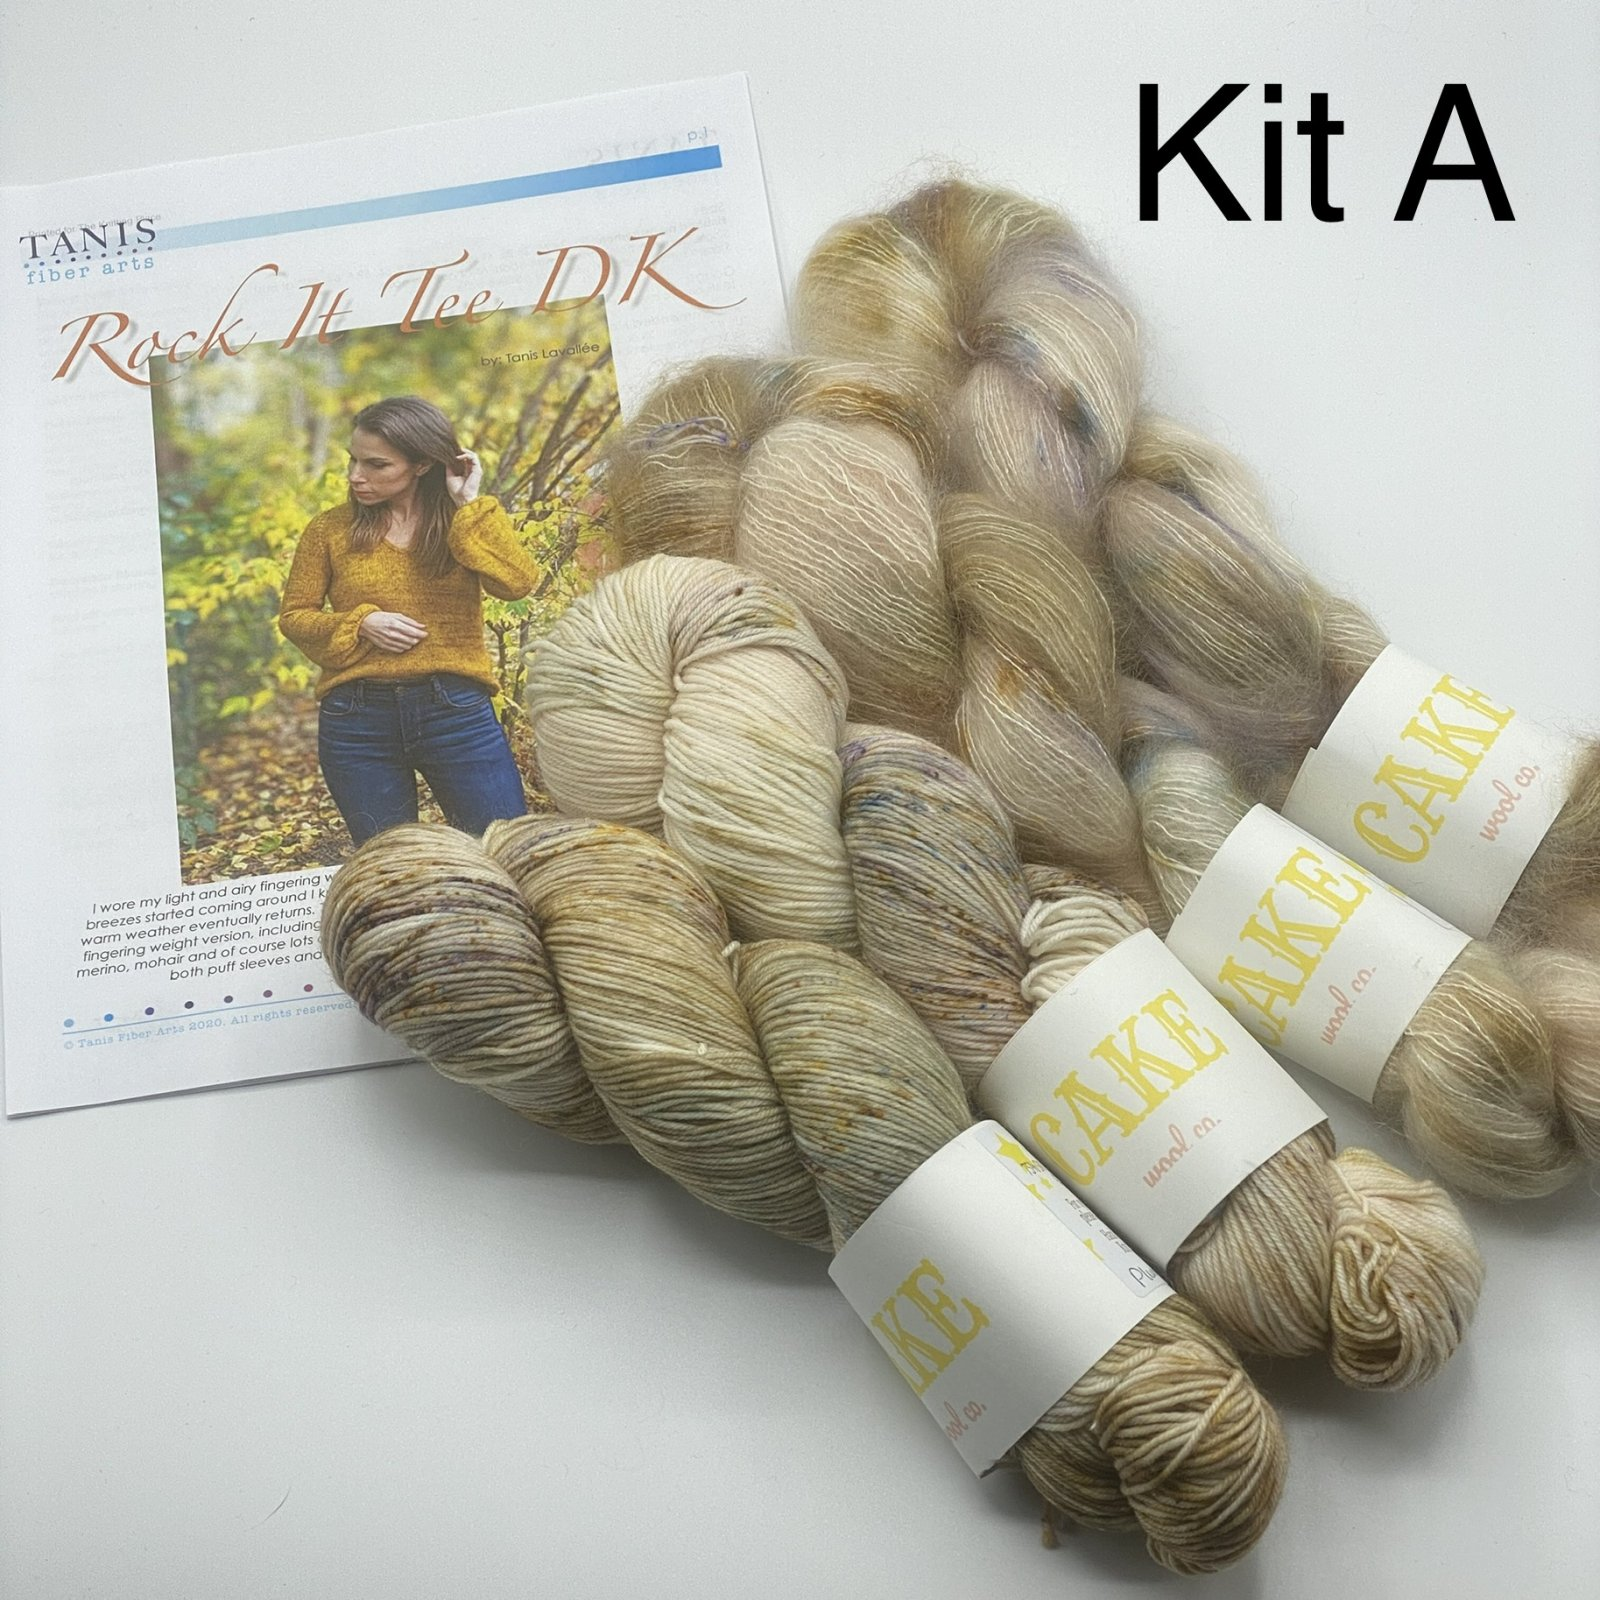 Rock It Tee DK Kits Up to 38 1/4""